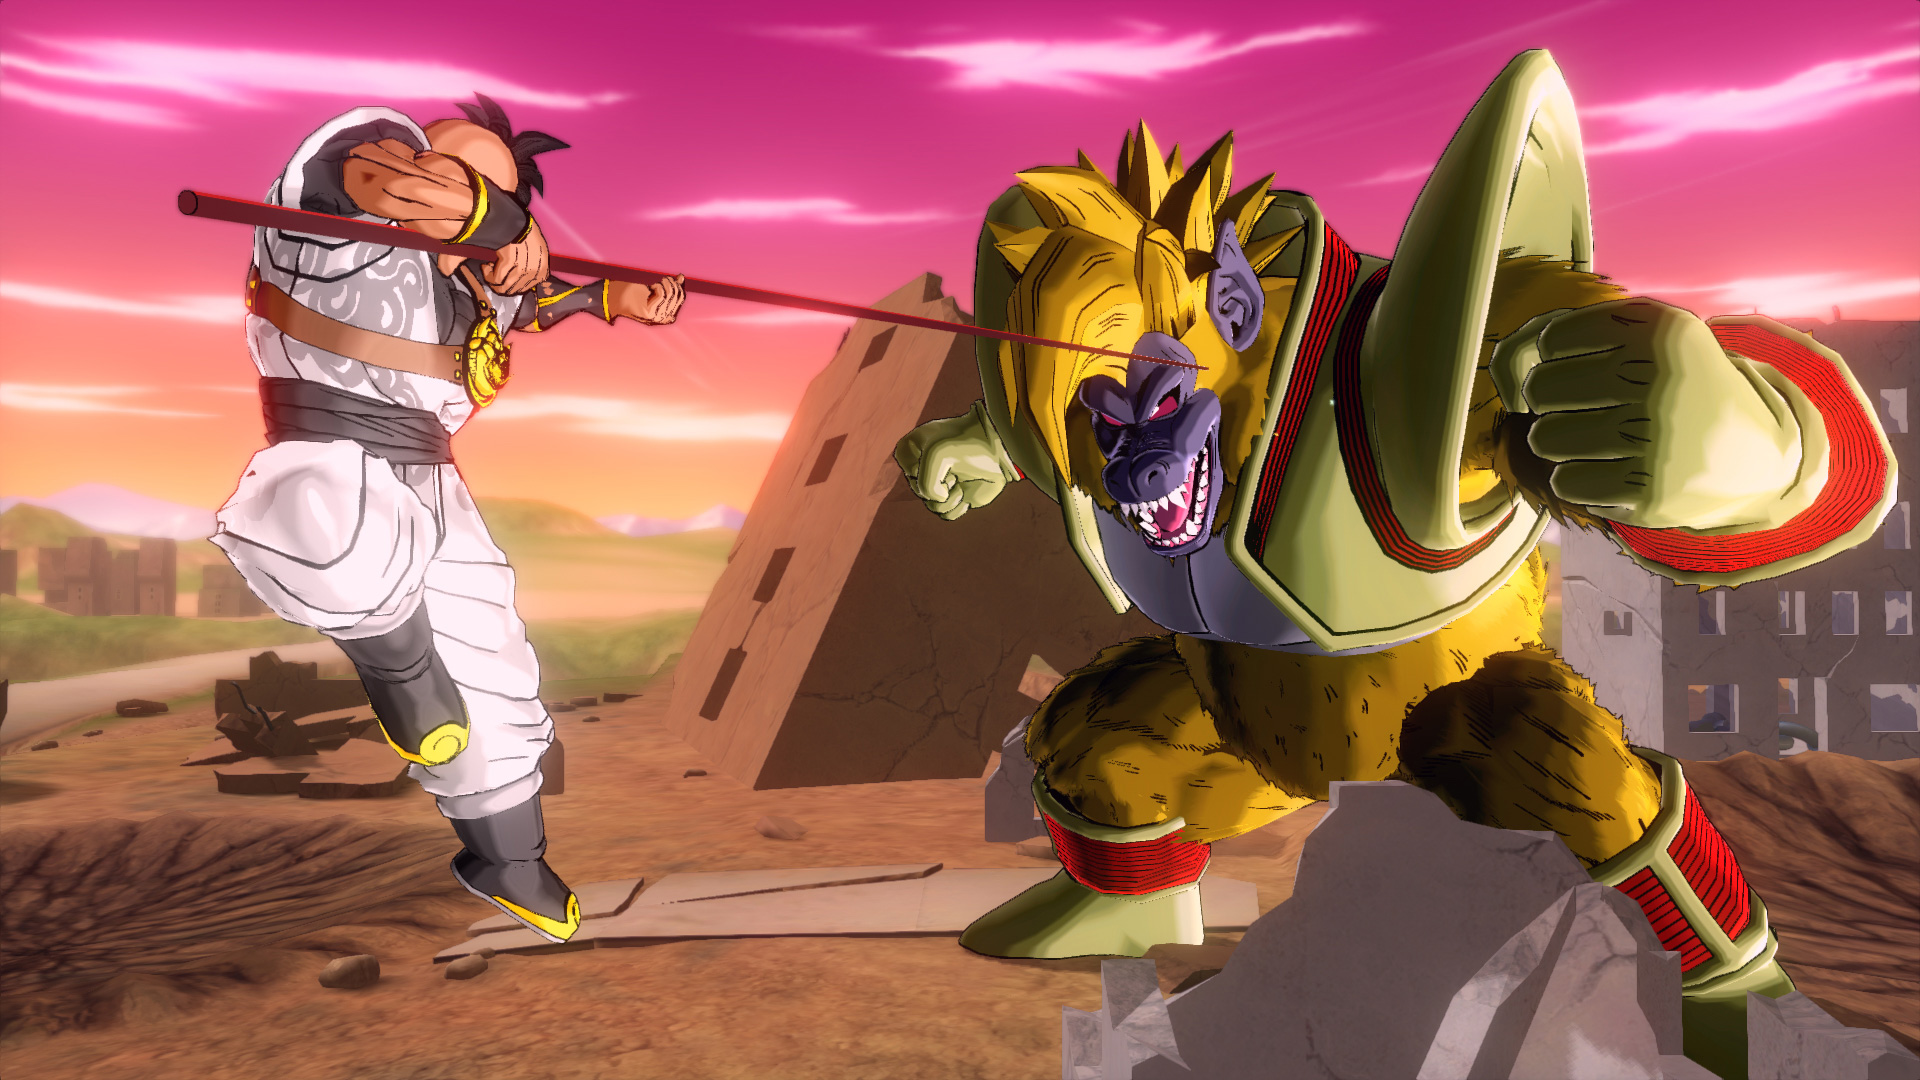 Dragon-Ball-Xenoverse-Dragon-Ball-GT-Screenshot-6